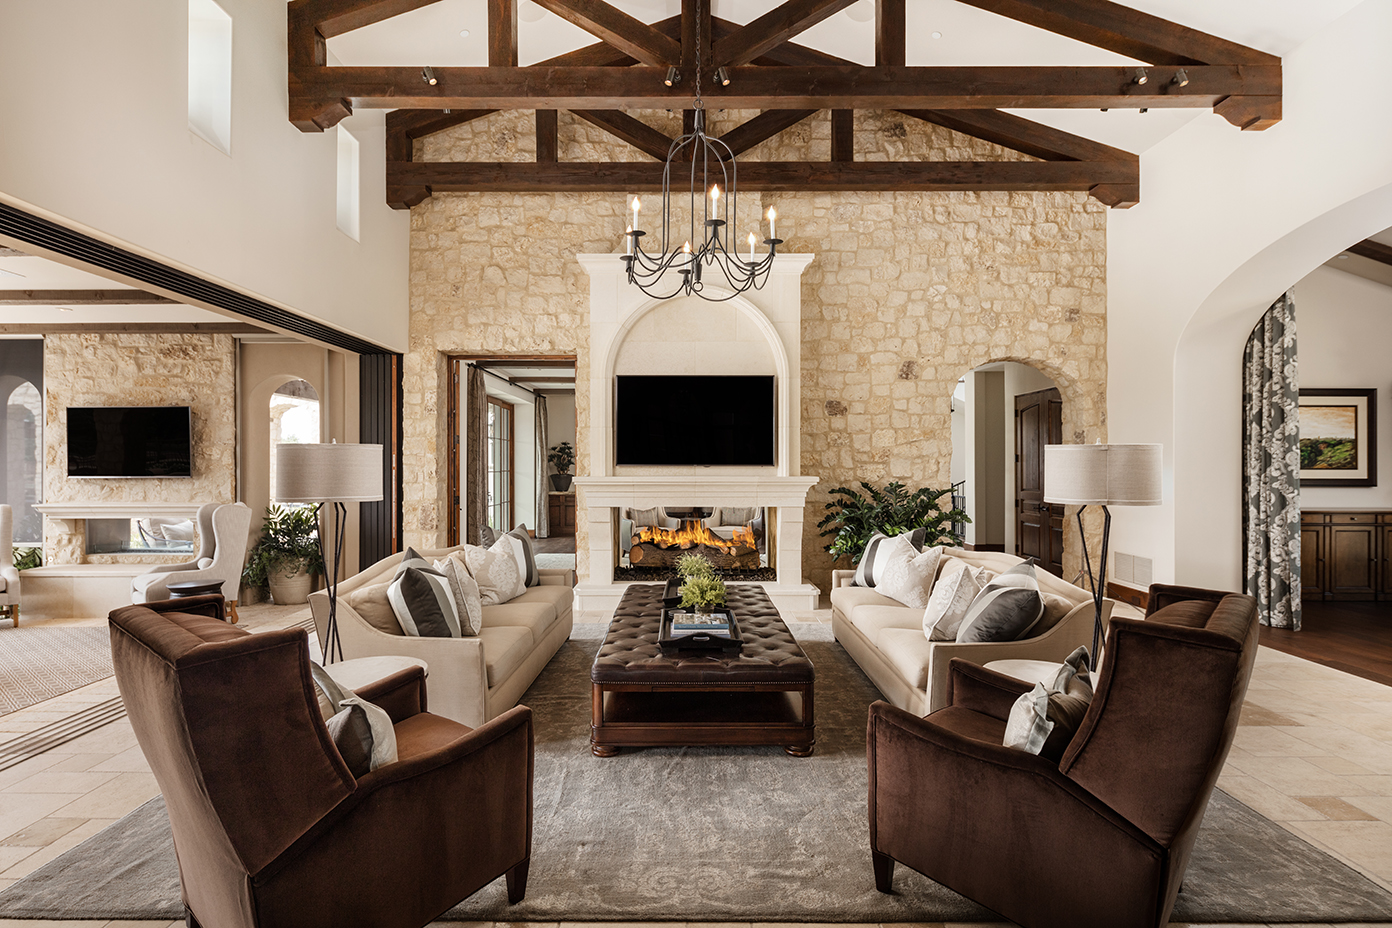 Claire Ownby: Meet Claire Ownby Of Ownby Design In Scottsdale